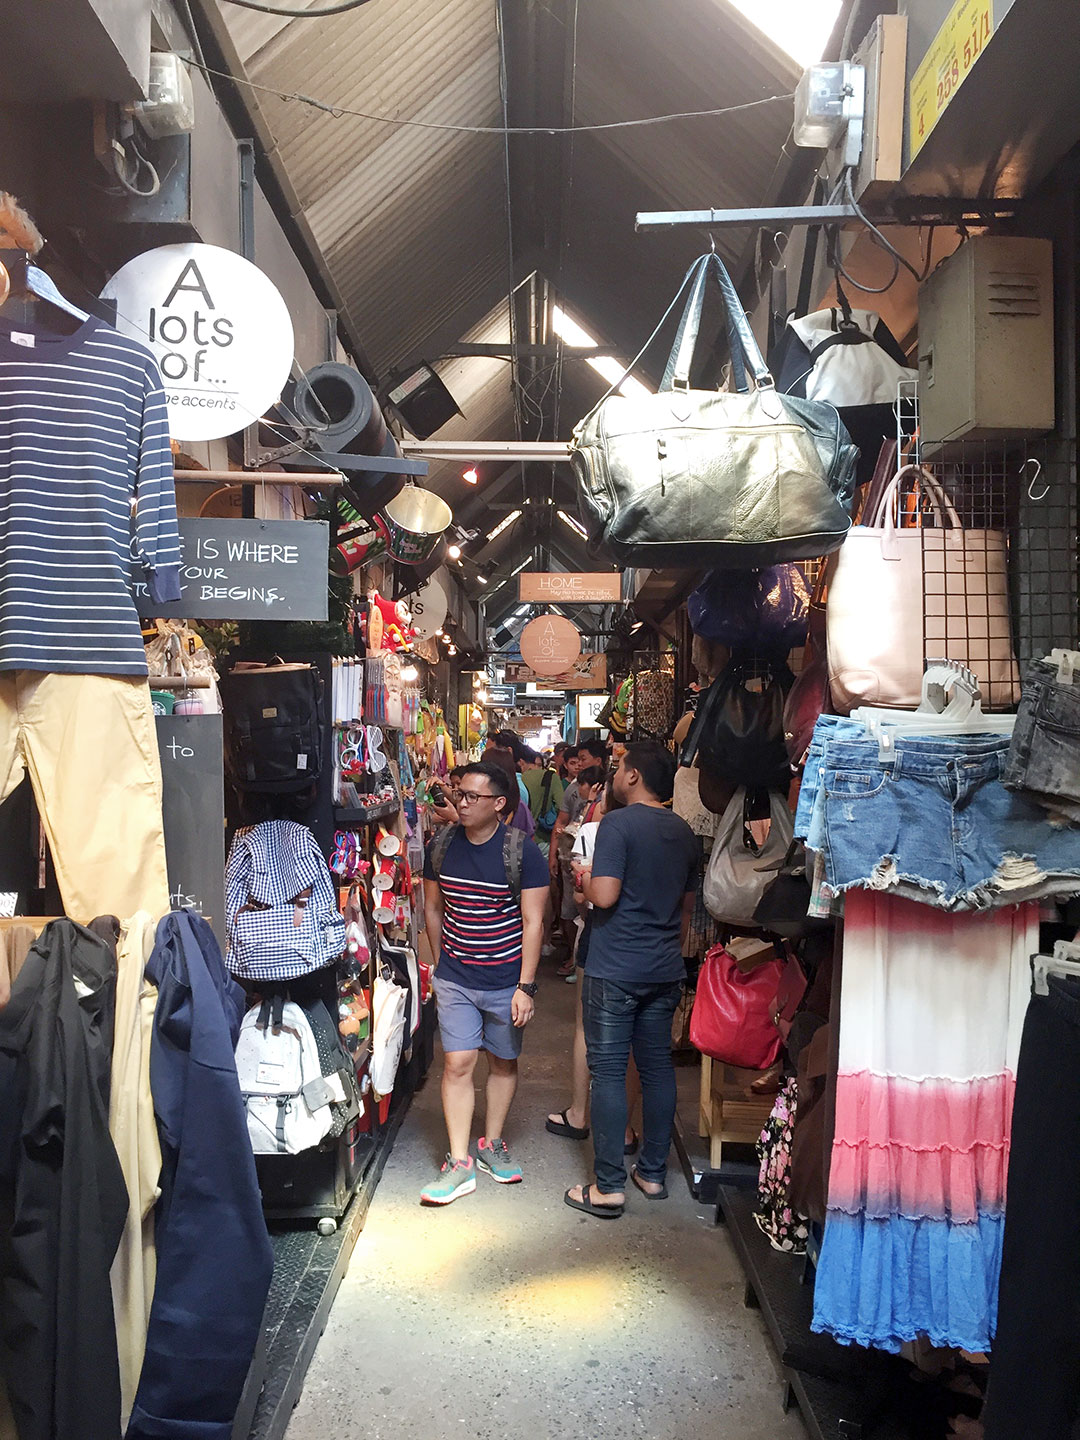 CHATUCHAK WEEKEND MARKET:     Chatuchak Weekend Market   is a fun place to shop. They sell everything from clothes and accessories, souvenirs, home goods, furniture and antiques, and street foods.